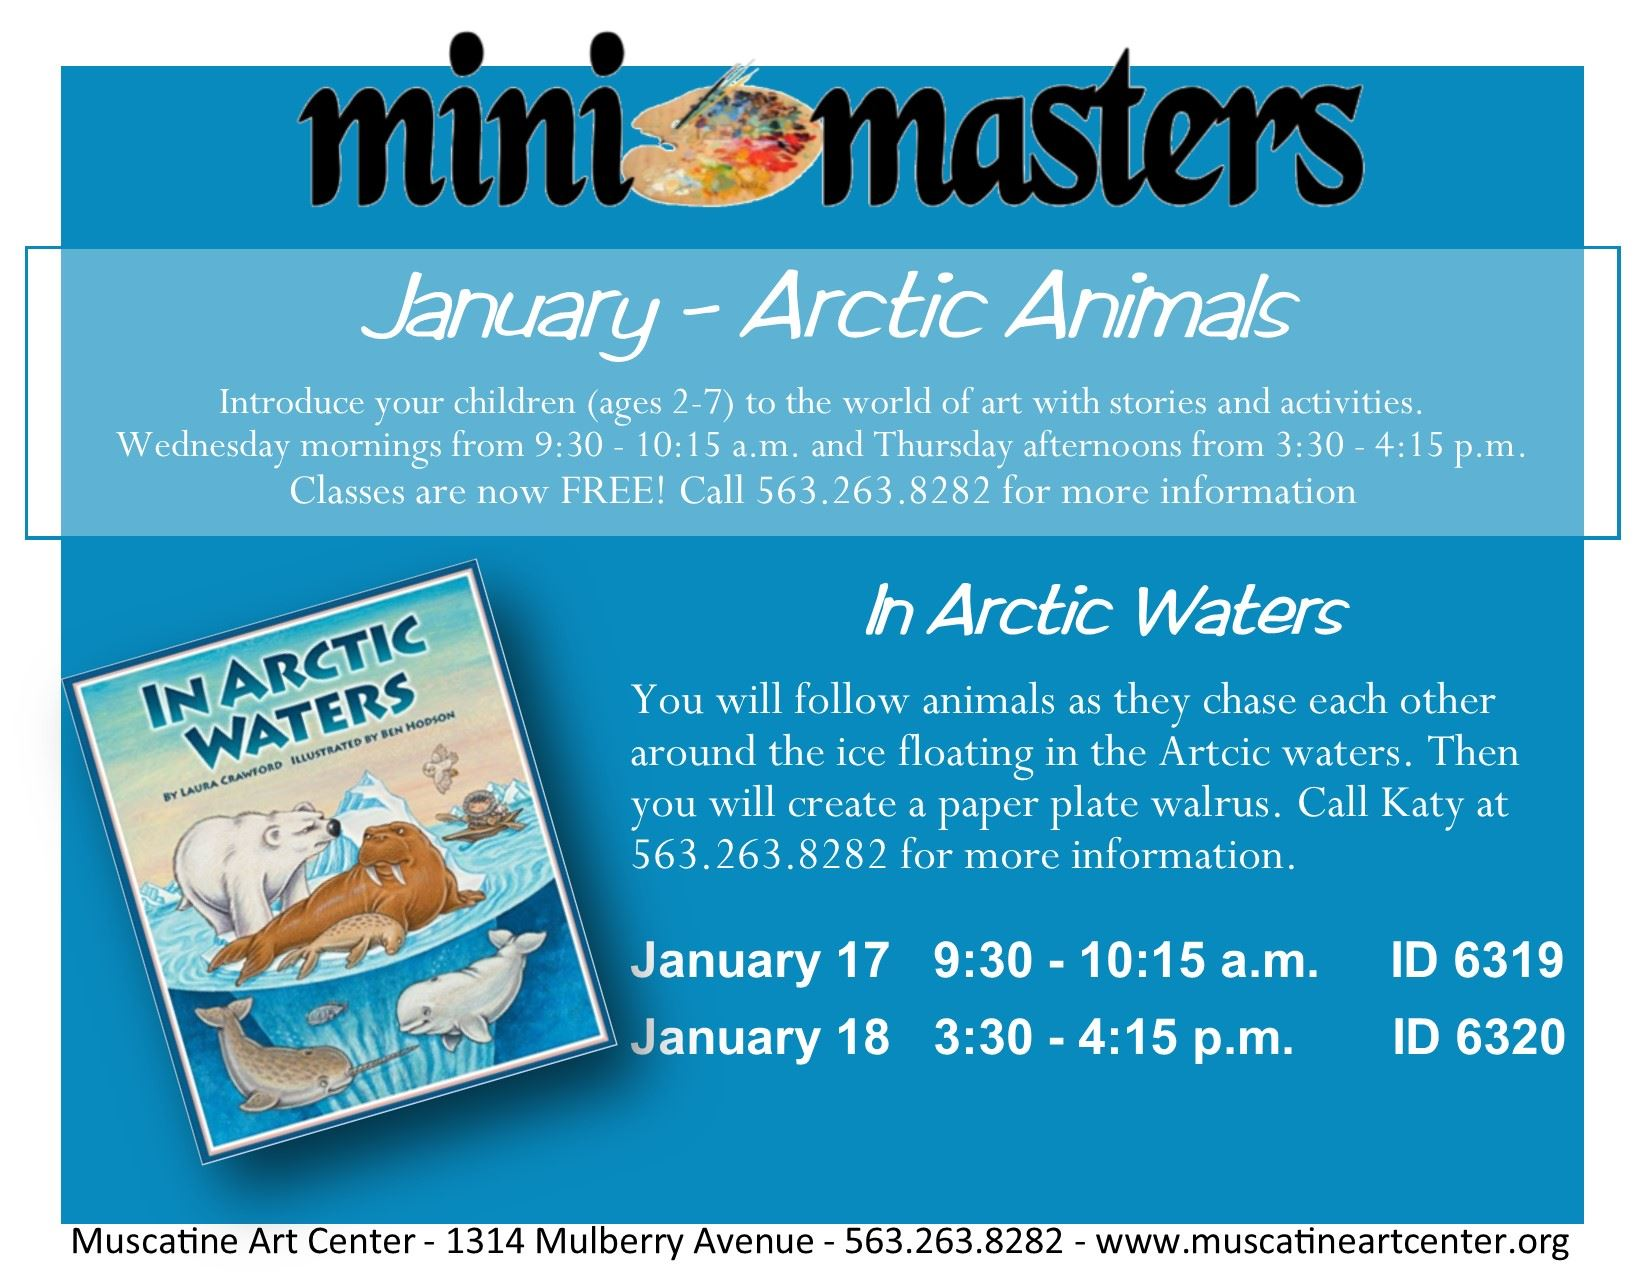 January 17-18 - Mini Masters - In Artic Waters